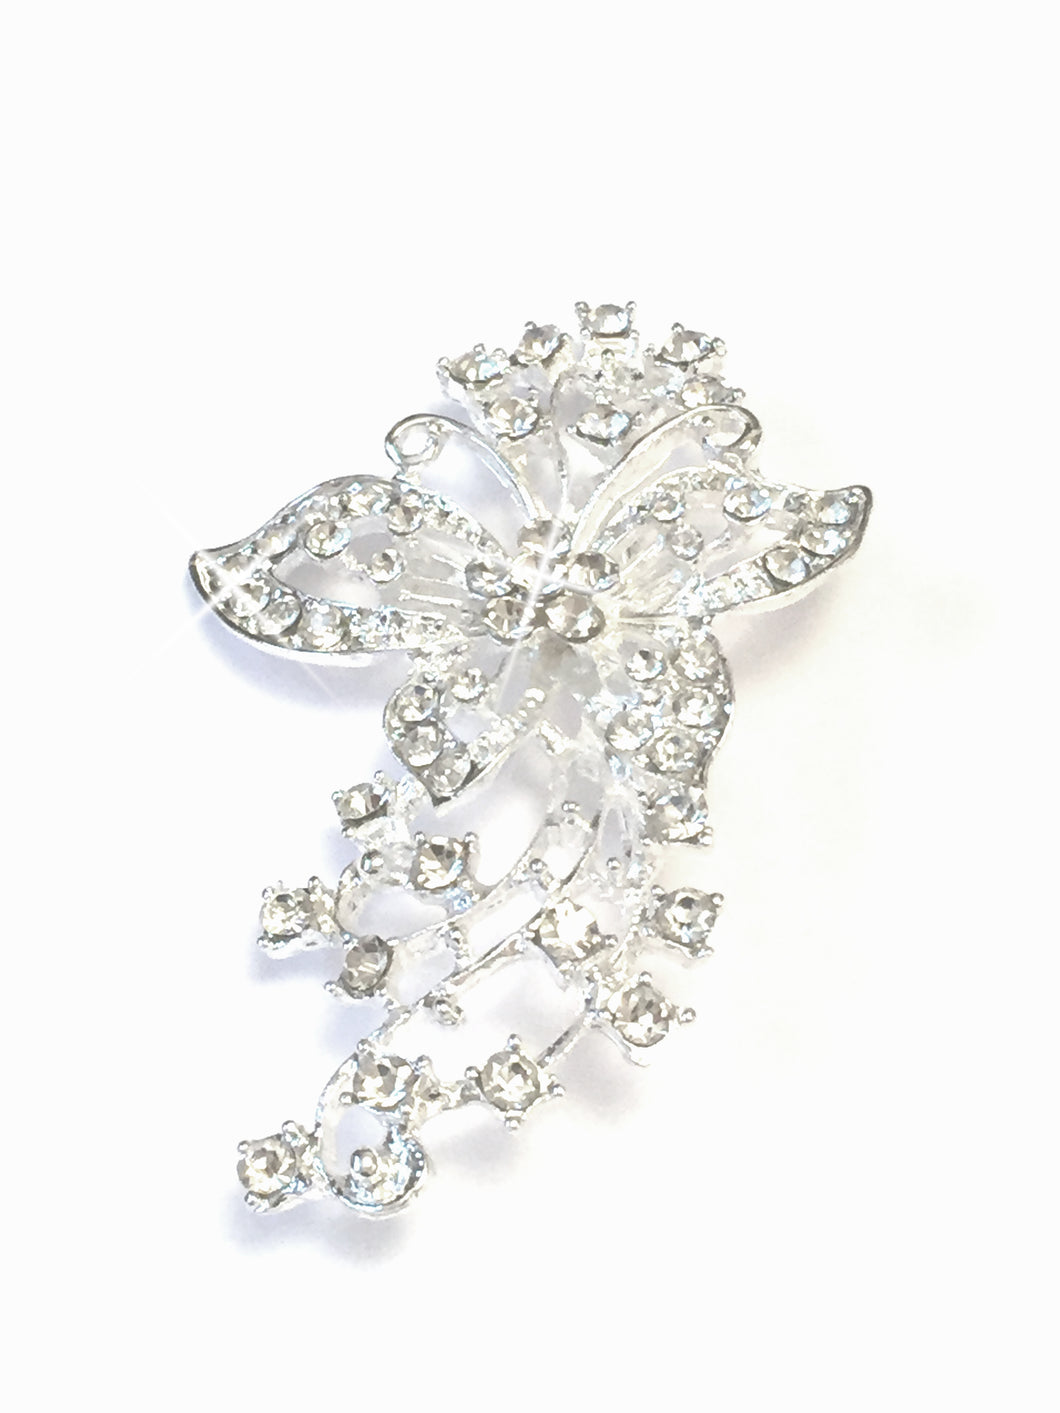 Sparkling Butterfly Brooch, This beautiful brooch is intricately designed with sparkling crystals, embracing a silver toned metal vine with a beautiful distinguished butterfly, with a pin & catch fastening